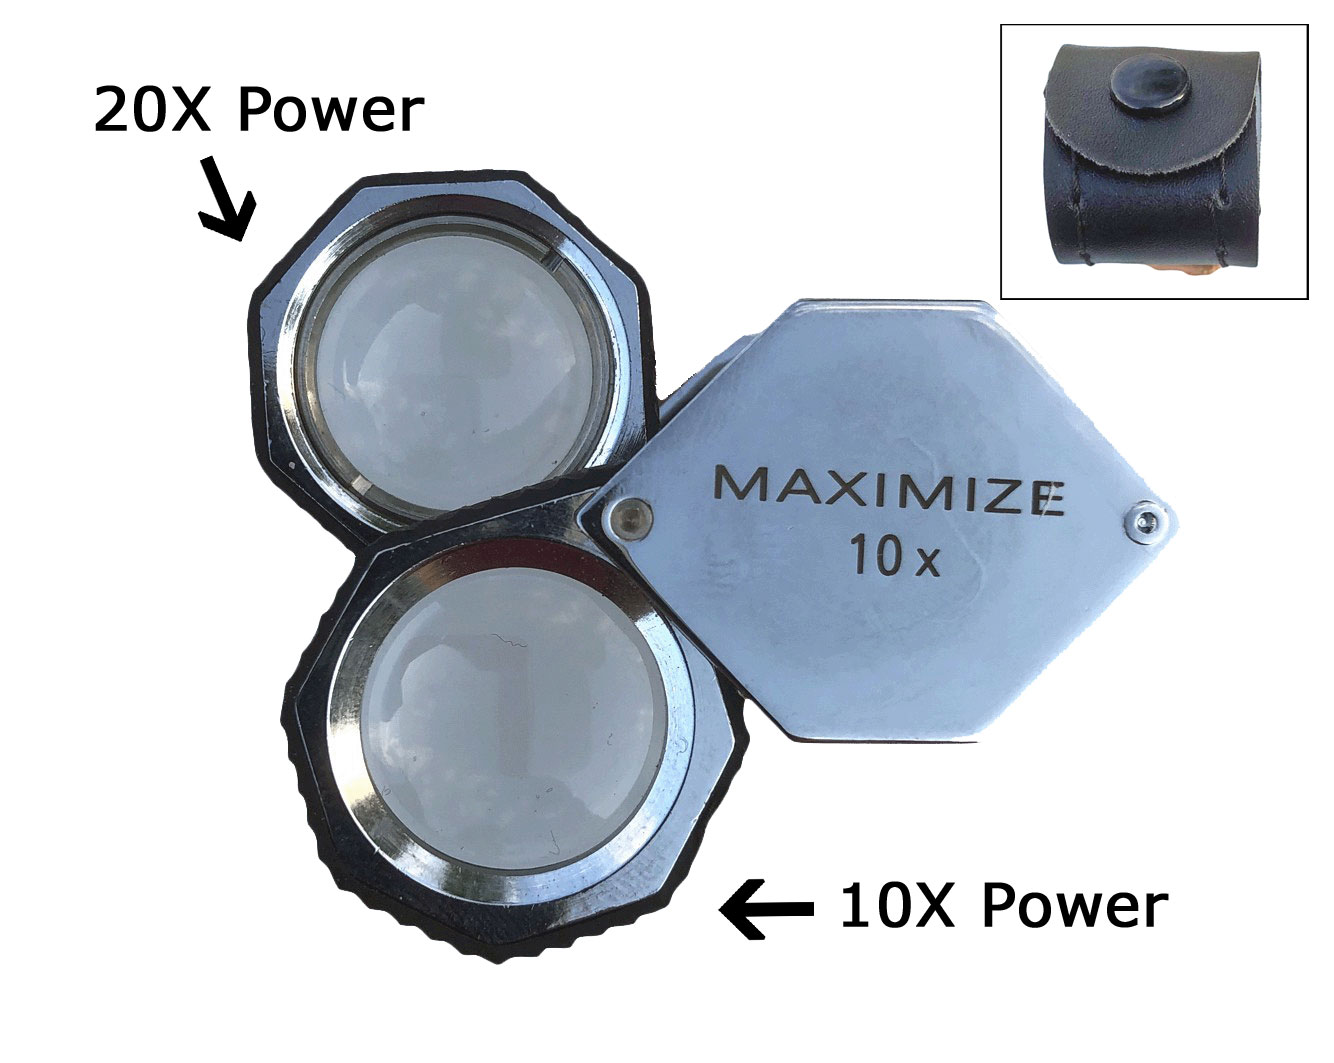 L3078C - Deluxe 30X Power Magnifier Loupe w/ Rubber Sleeve ( mg2410-20 ) h